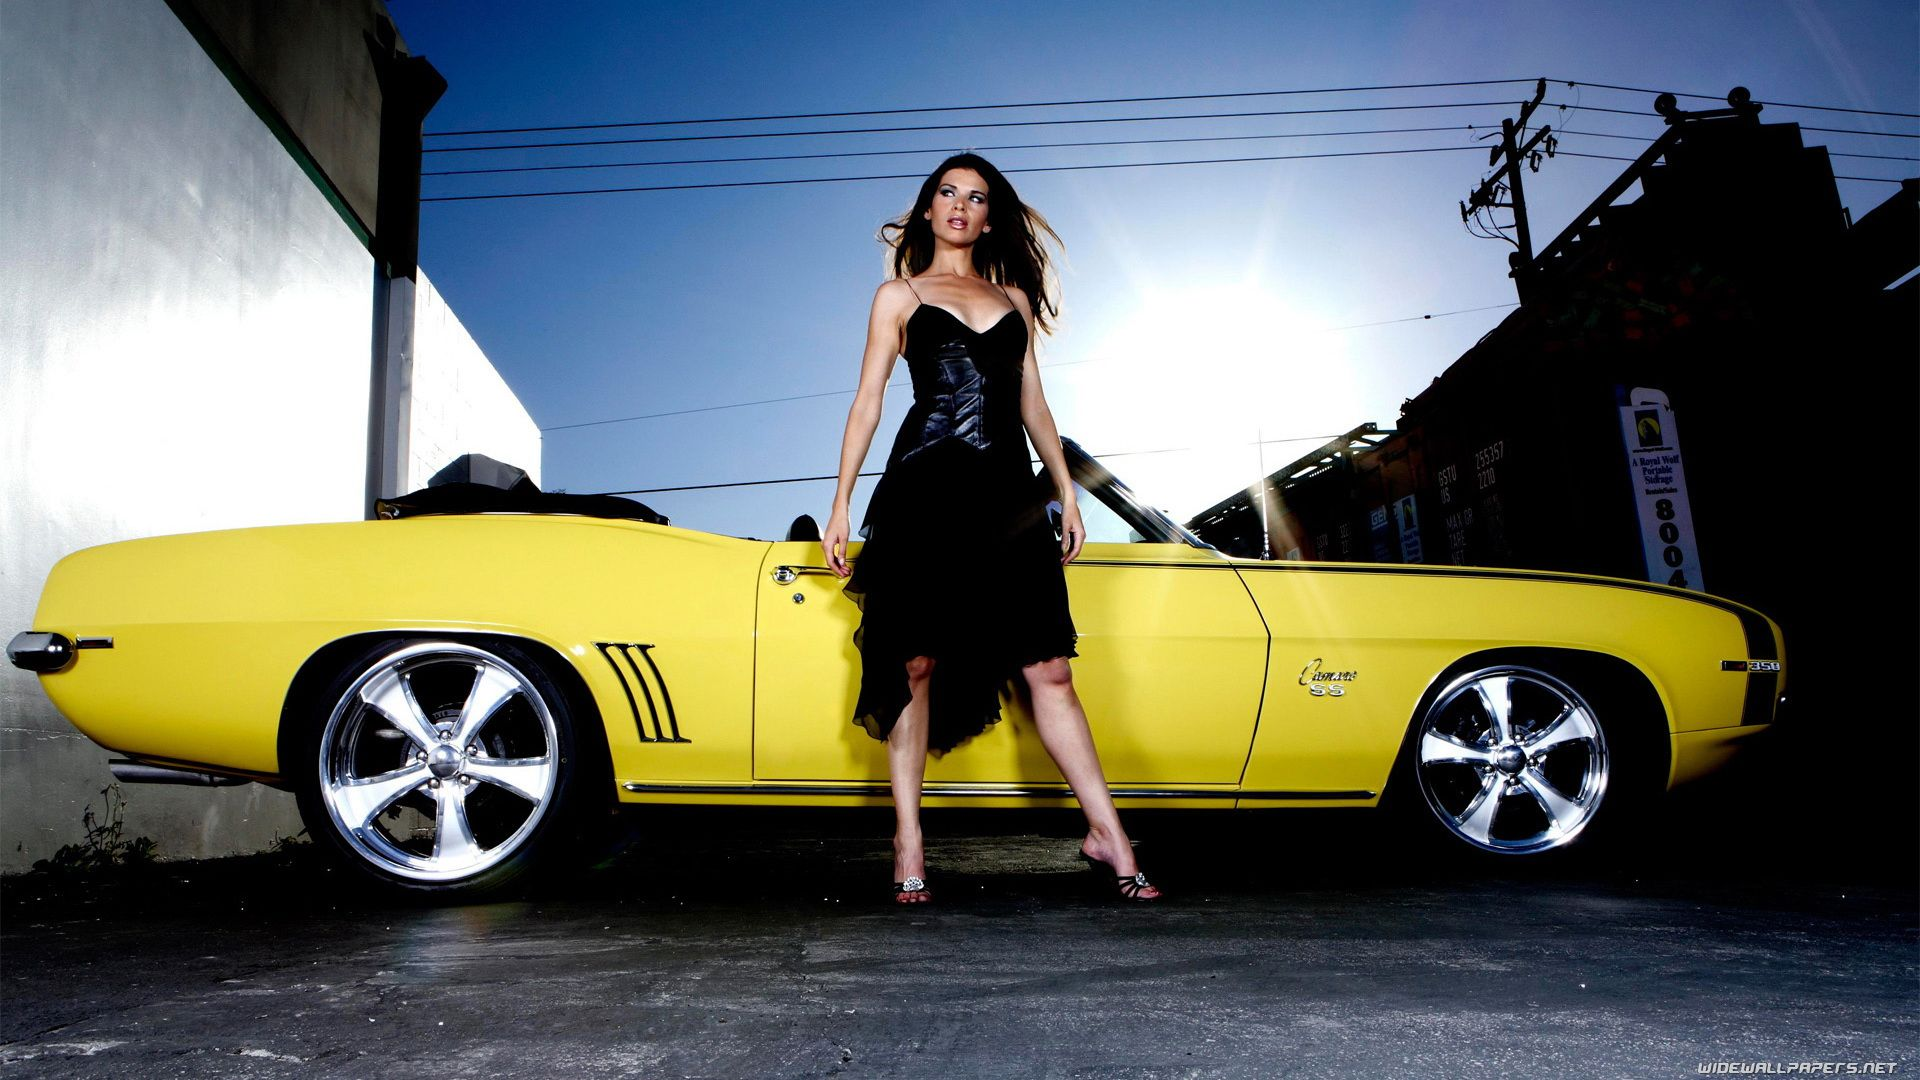 Babes And Muscle Cars Related Posts Camaro Chevrolet Girls Gm